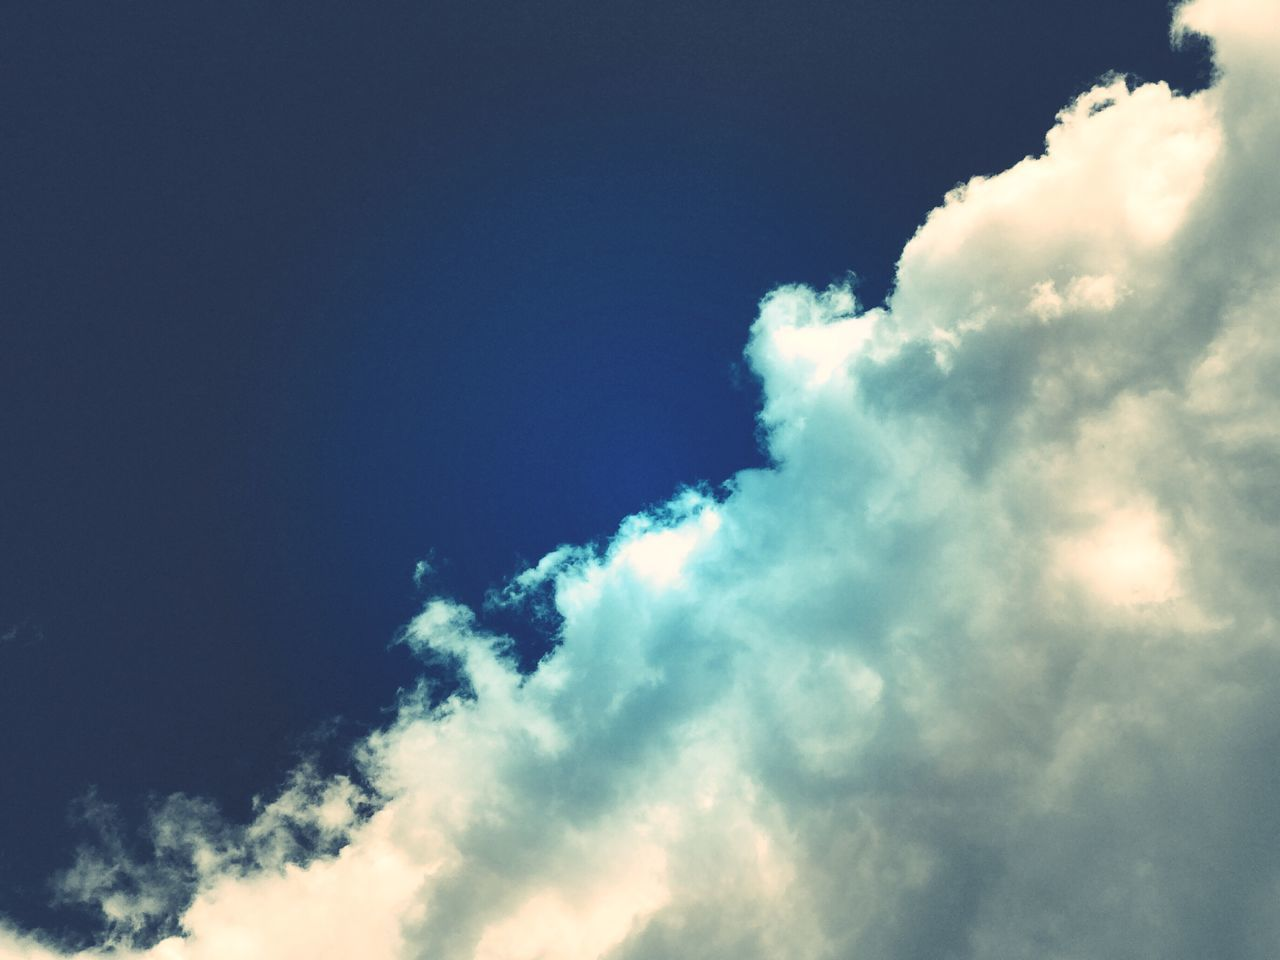 Sky Low Angle View Cloud - Sky Nature Beauty In Nature Blue No People Outdoors Day Sky Only Backgrounds Thephotojournalist-2017EyeEmAwards Scenics Blue Sky Cumulus Cloud Cloud Clouds And Sky Blueandwhite White Heavenly Sky High Angle View Lookingup Natural Beauty Natural Pattern Beauty In Ordinary Things